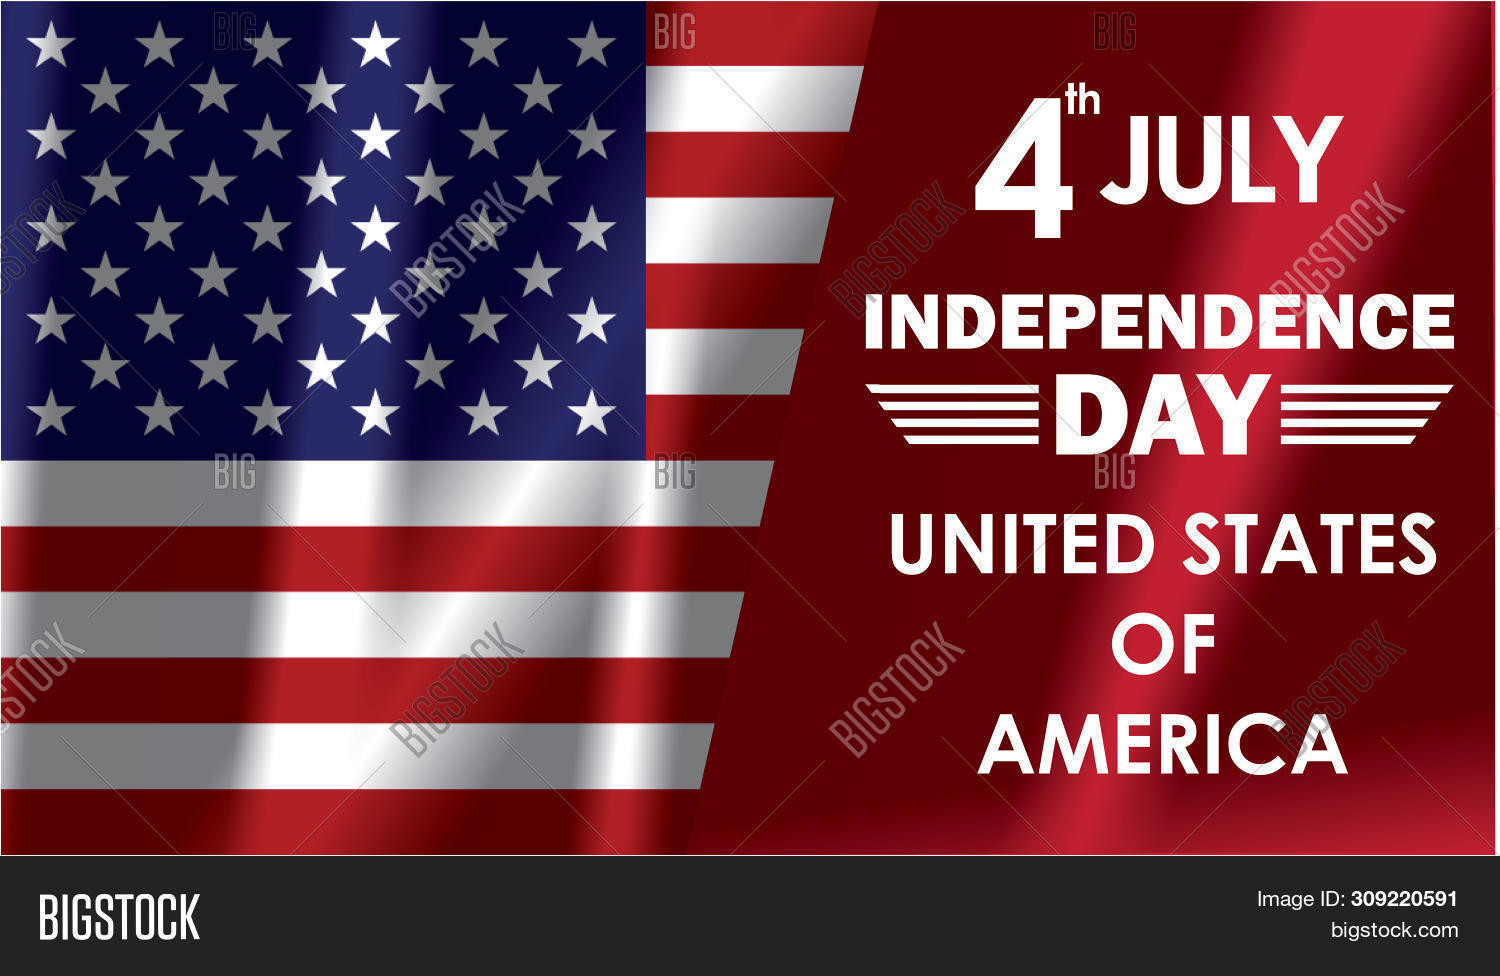 4,4th,ad,advertisement,america,american,background,banner,blue,card,celebrate,celebration,day,design,discount,event,flag,fourth,freedom,glory,greeting,happy,holiday,illustration,independence,july,labor,liberty,memorial,national,navy,offer,party,patriotic,pattern,poster,red,sale,special,star,states,stripes,symbol,template,traditional,typography,united,us,usa,vector